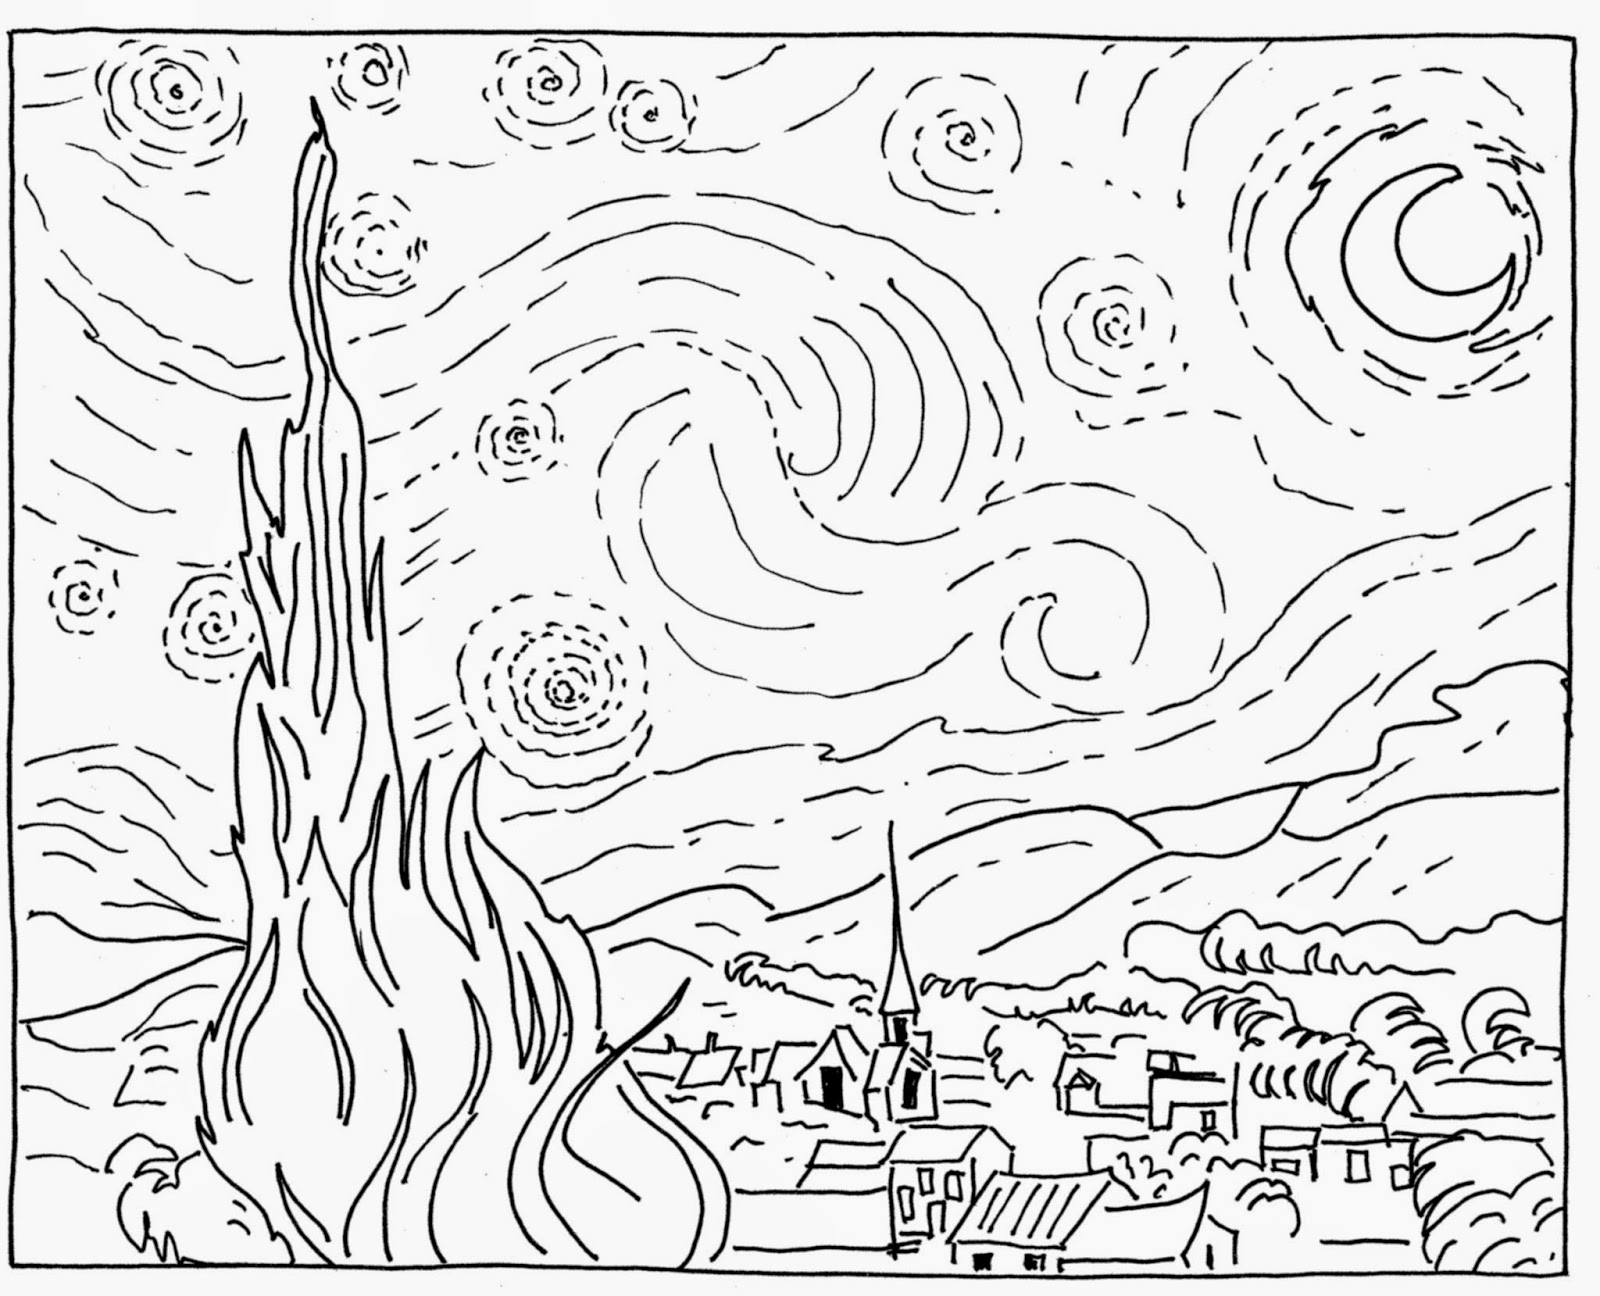 vincent van gogh starry night coloring page vincent van gogh starry night coloring sketch coloring page coloring starry van night gogh page vincent